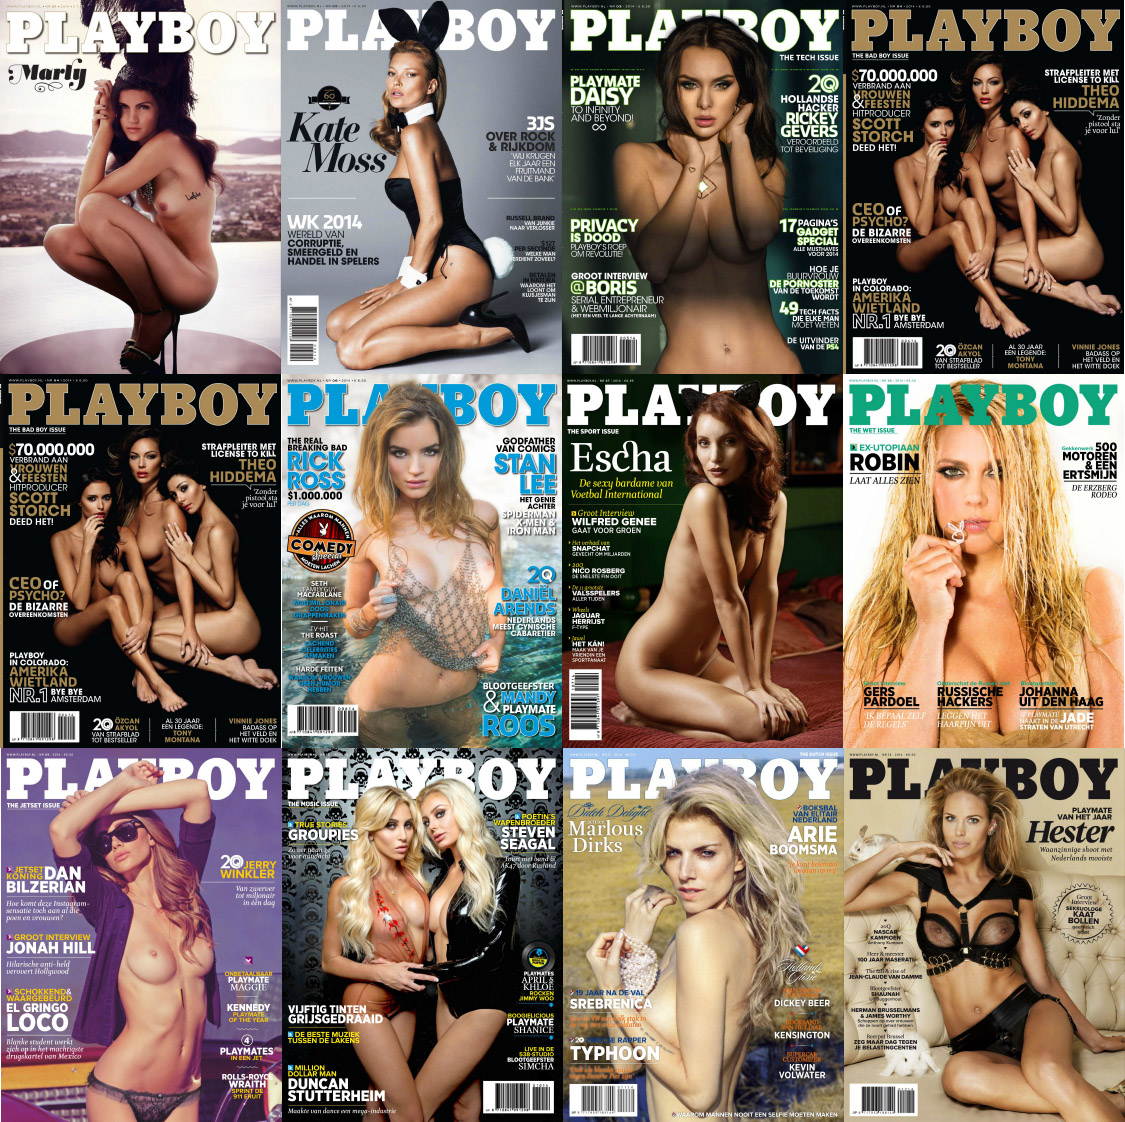 Playboy Nederland Magazine - 2014 Full Year Issues Collection free download